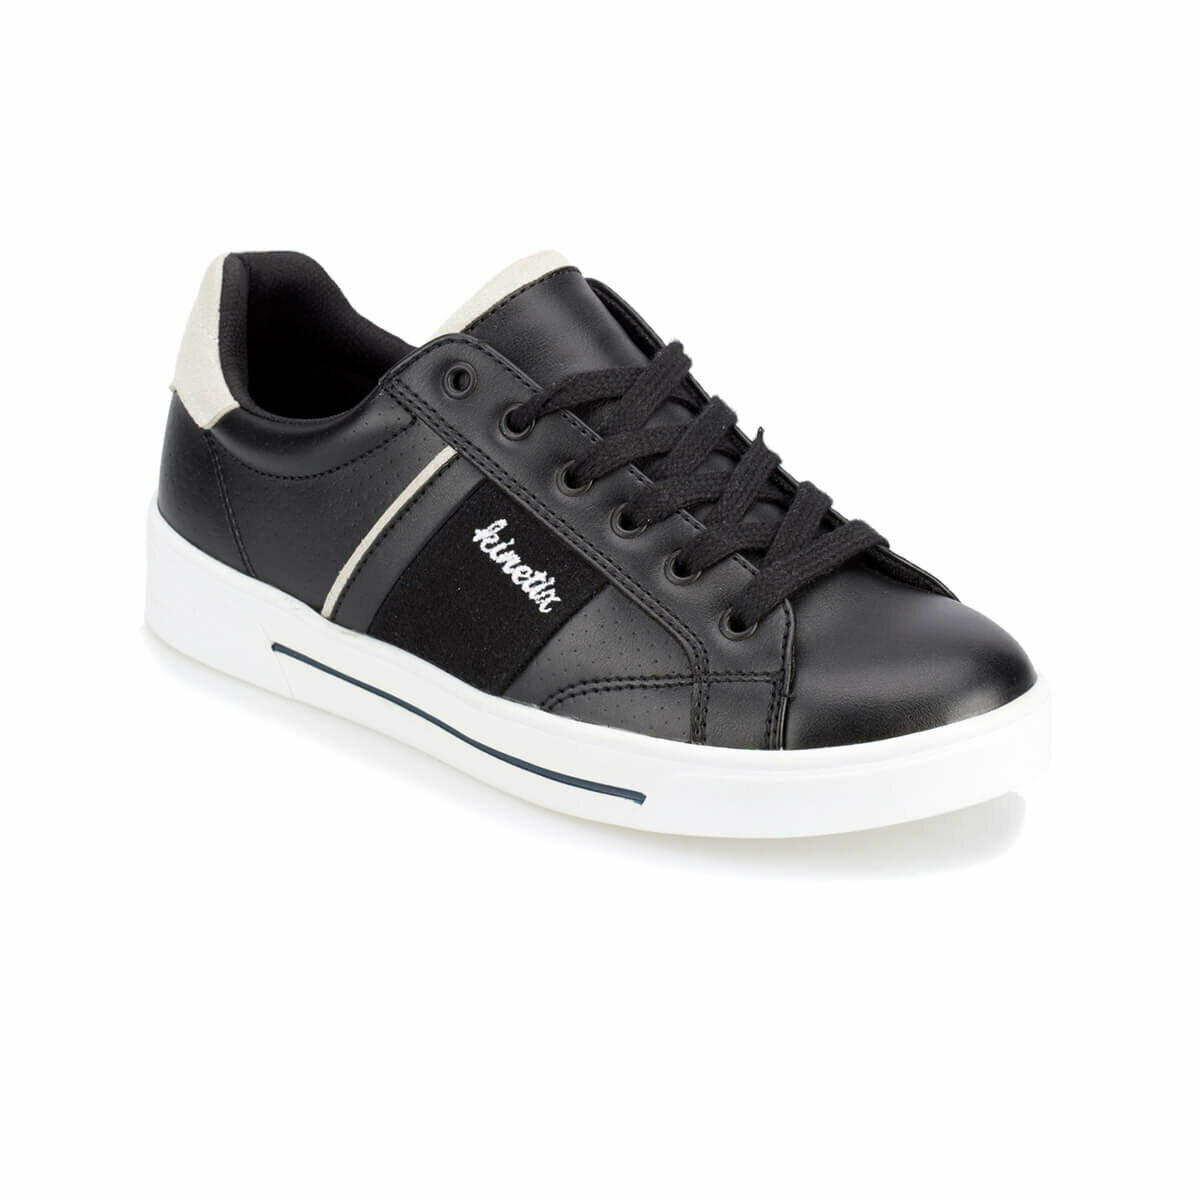 FLO BENIN Black Women 'S Sneaker Shoes KINETIX